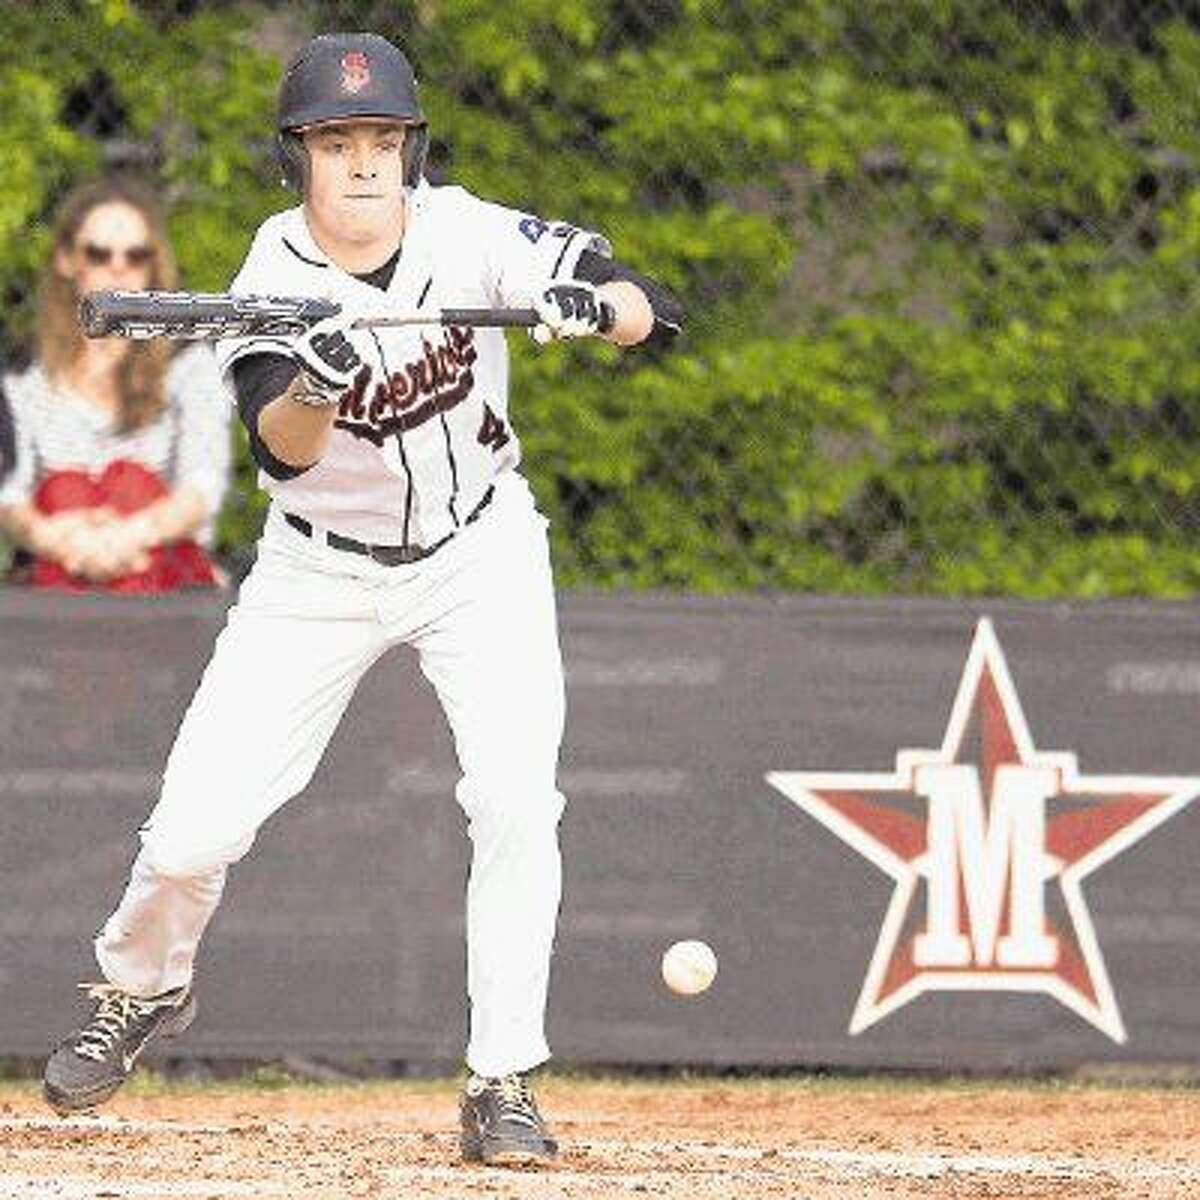 Baseball season is set to begin this week if the weather permits with all the Examiner-area teams slated to play in a tournament. St. John's will open play Friday in the John Cooper School tournament in The Woodlands as the teams will be all over Southeast Texas hoping for warm and dry skies so they can get the 2015 campaign going.